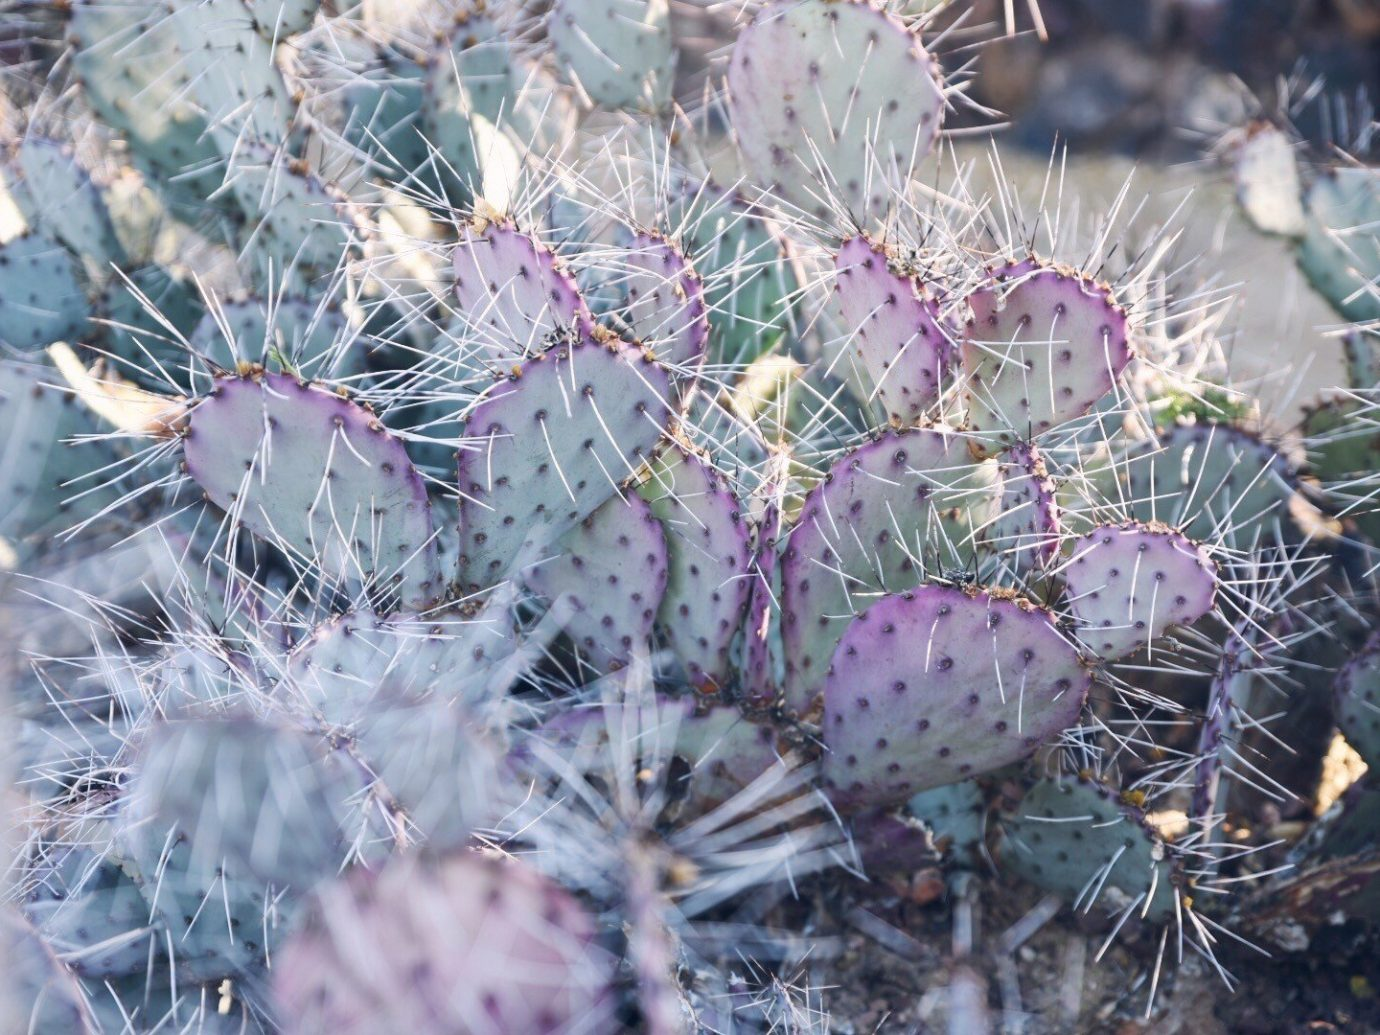 Jetsetter Guides plant flora cactus flower botany prickly pear land plant frost thorns spines and prickles flowering plant wildflower hedgehog cactus caryophyllales